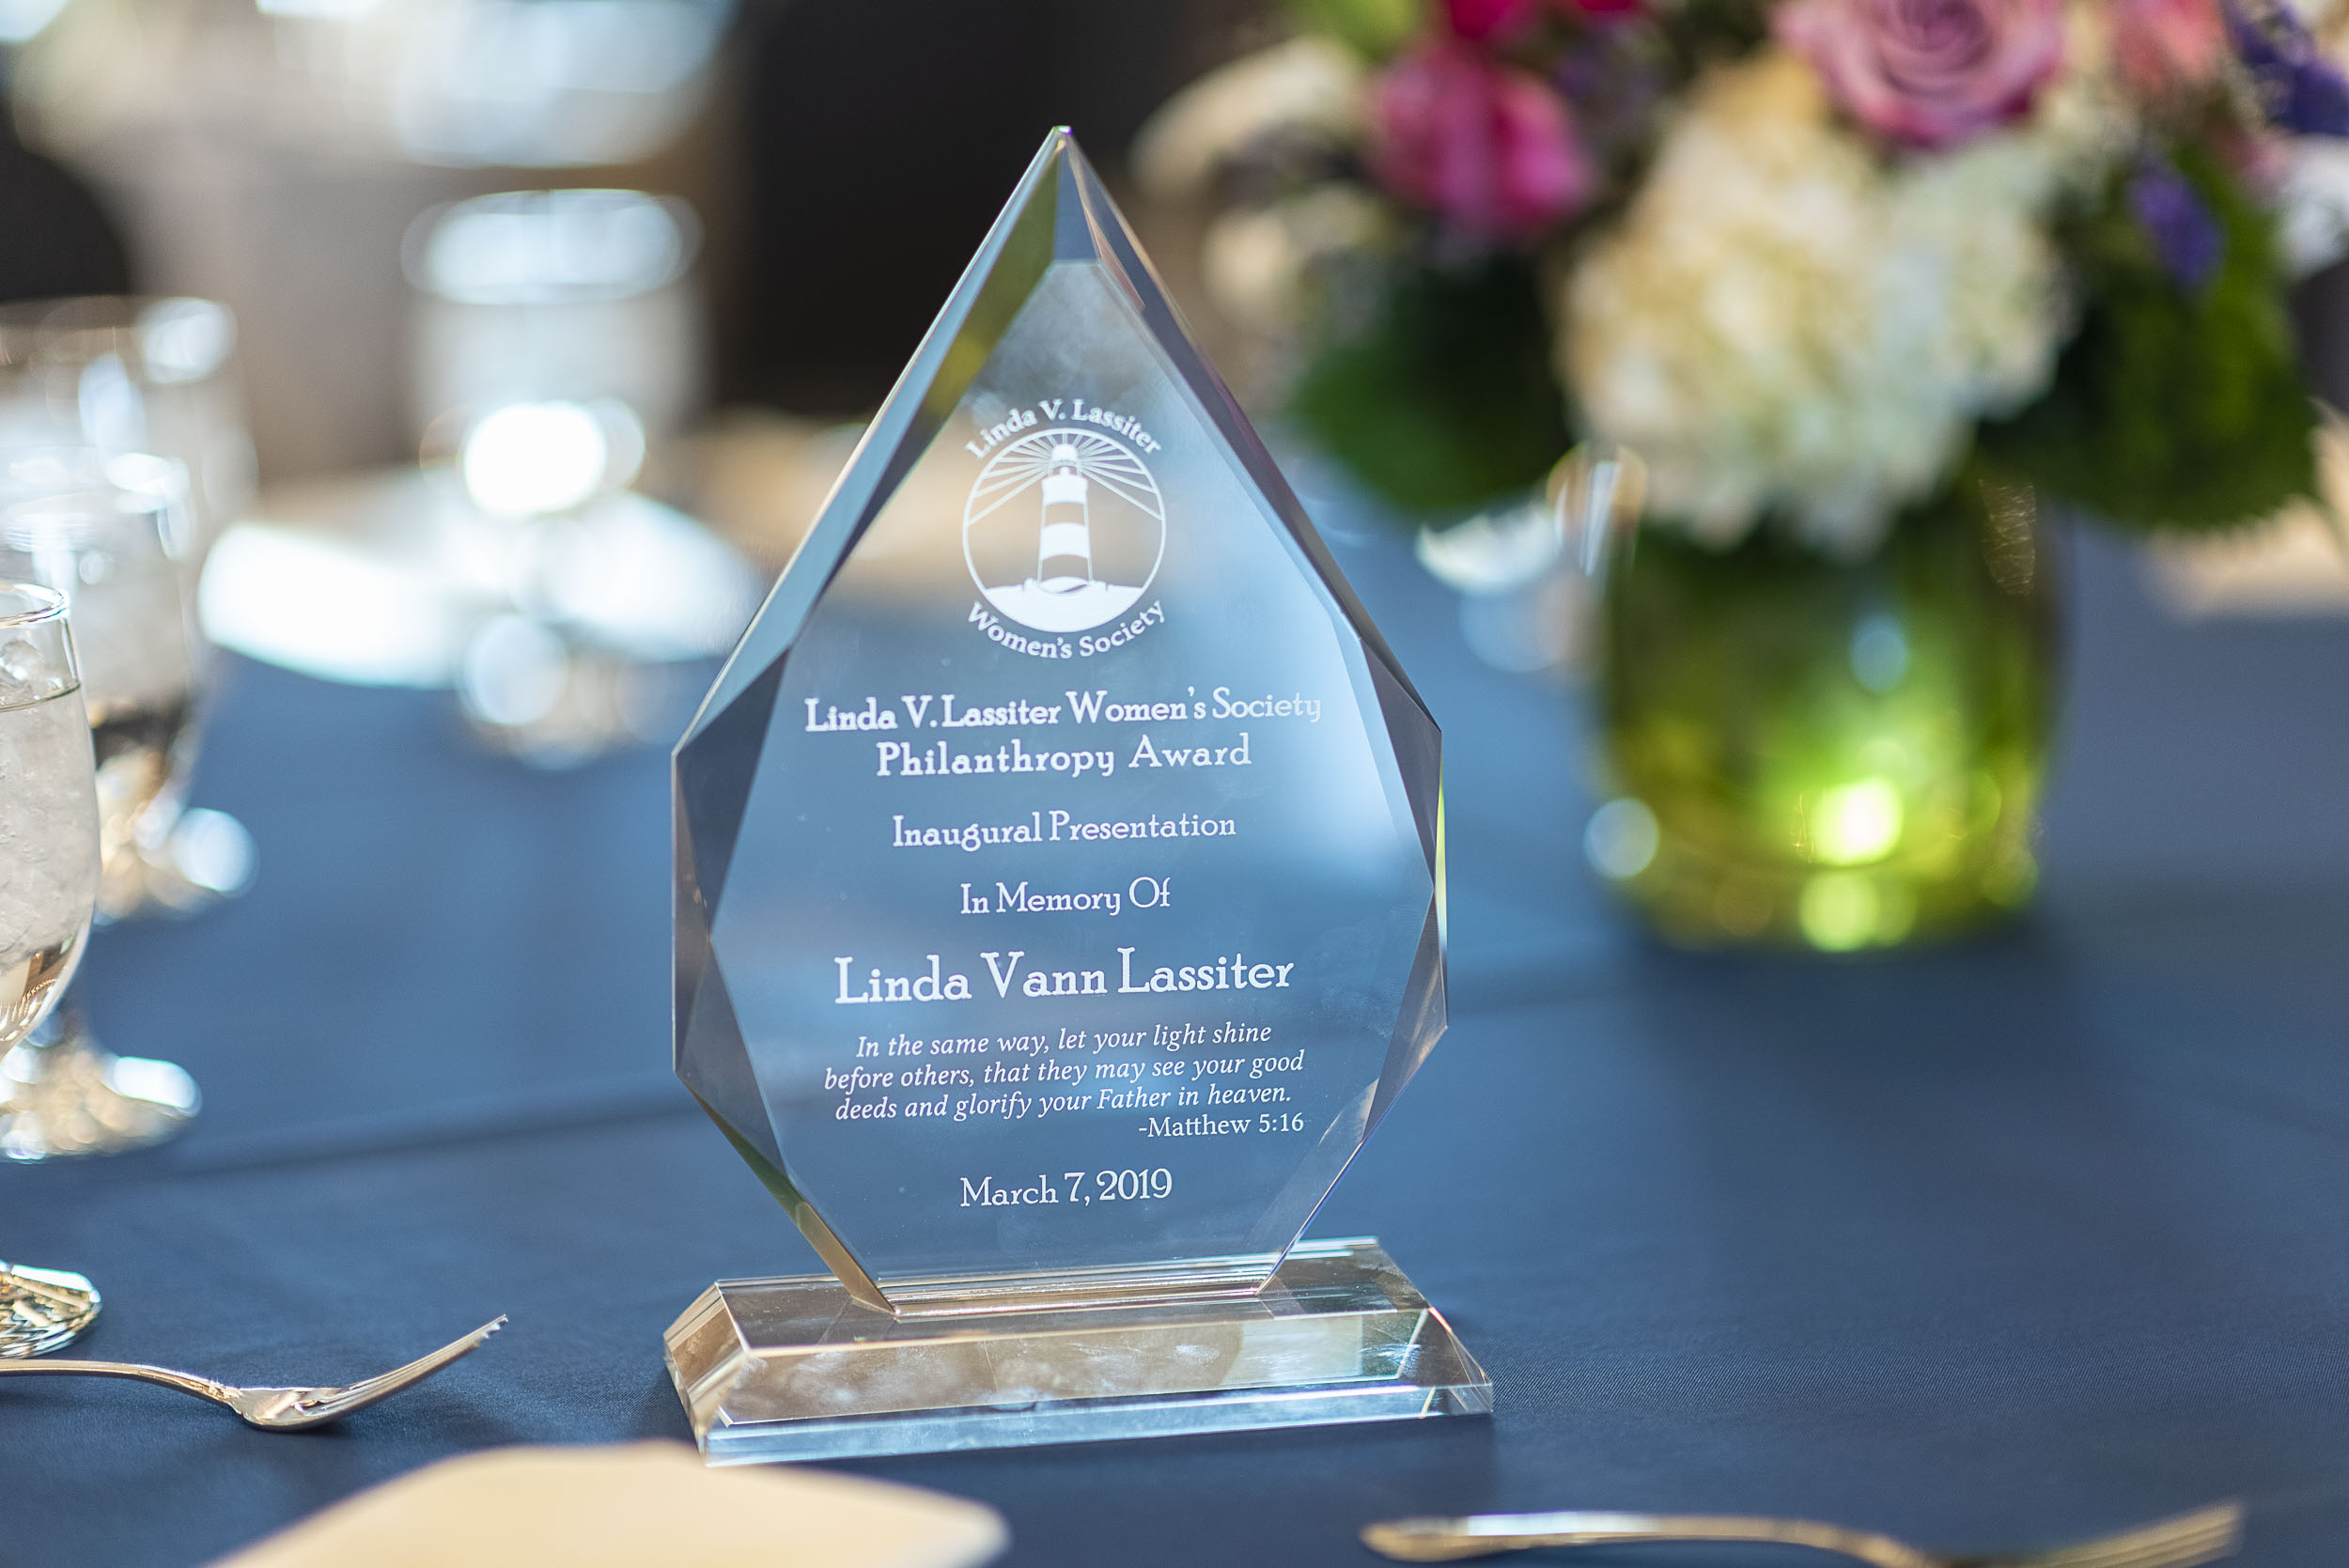 Nominations are currently being accepted for the Linda Vann Lassiter Women's Society Philanthropist of the Year. The honor is awarded annually to an individual who has made a positive impact in our community through giving, and whose philanthropic leadership sets an inspiring example for all with regard to time, talents, and treasures.